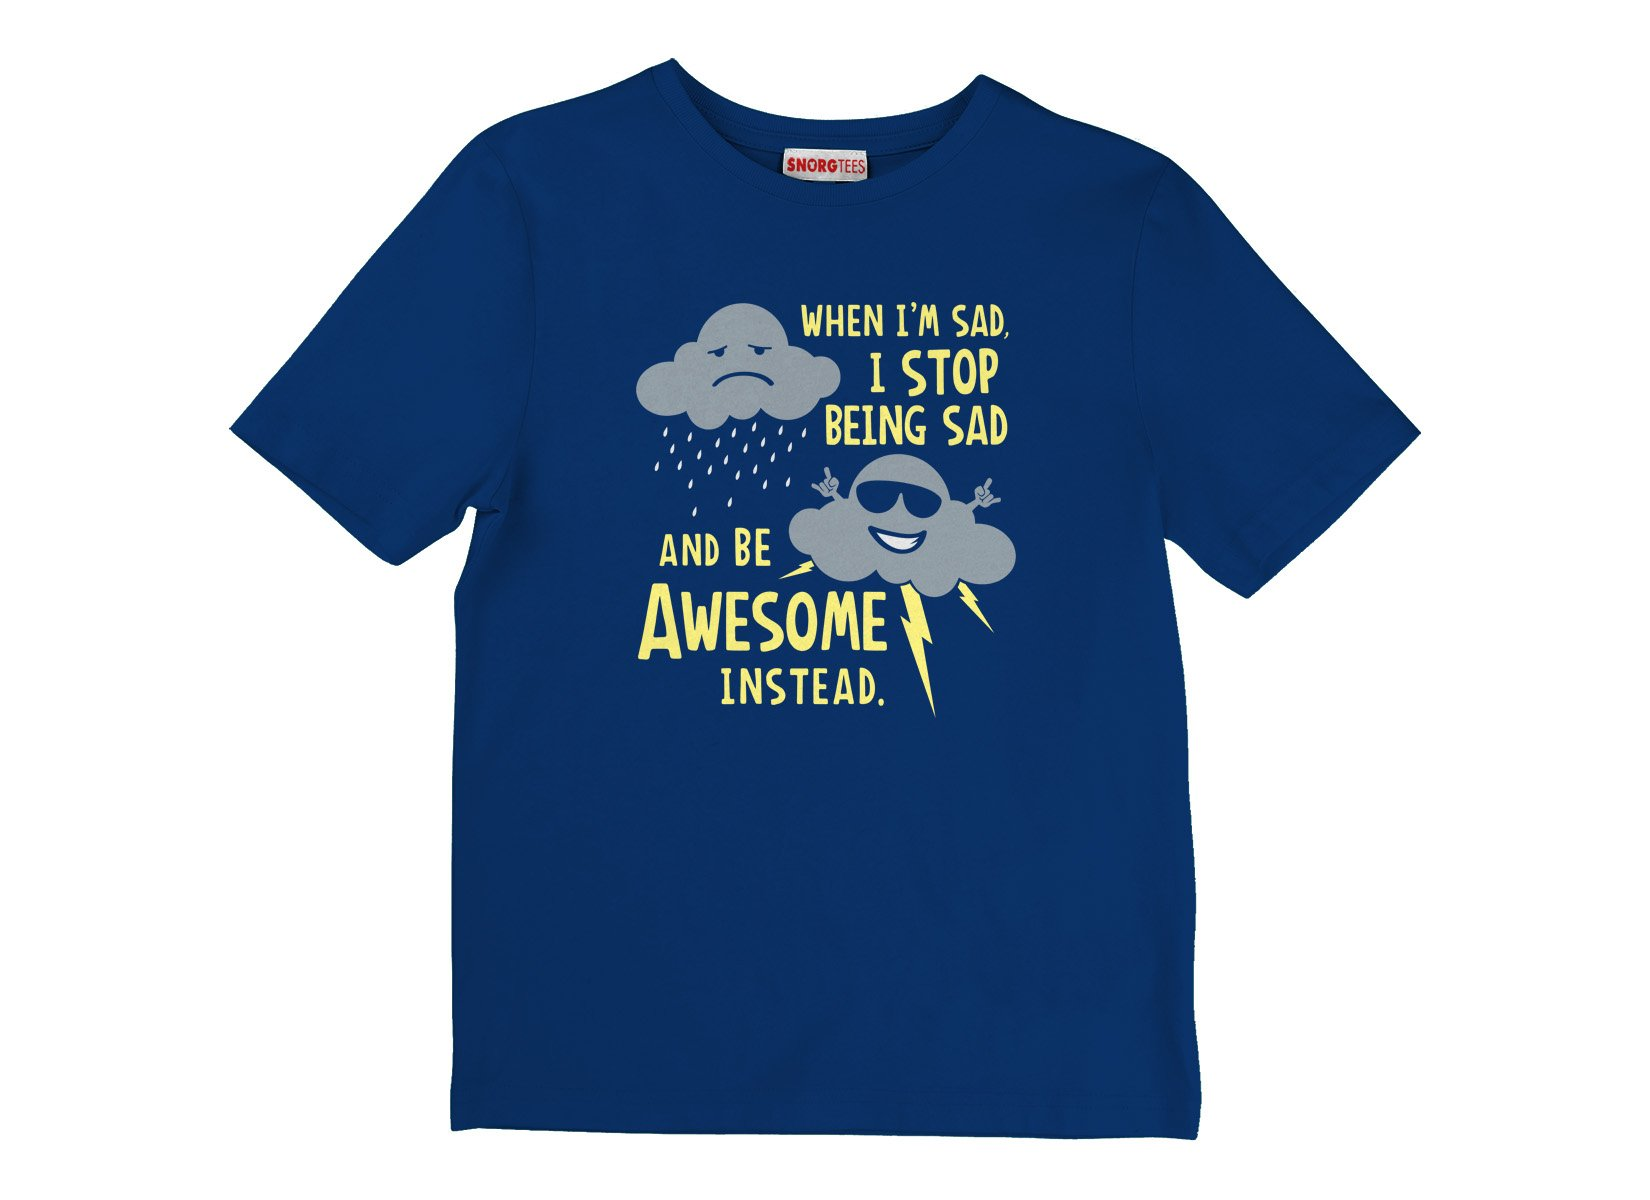 When I'm Sad, I Stop Being Sad And Be Awesome Instead on Kids T-Shirt